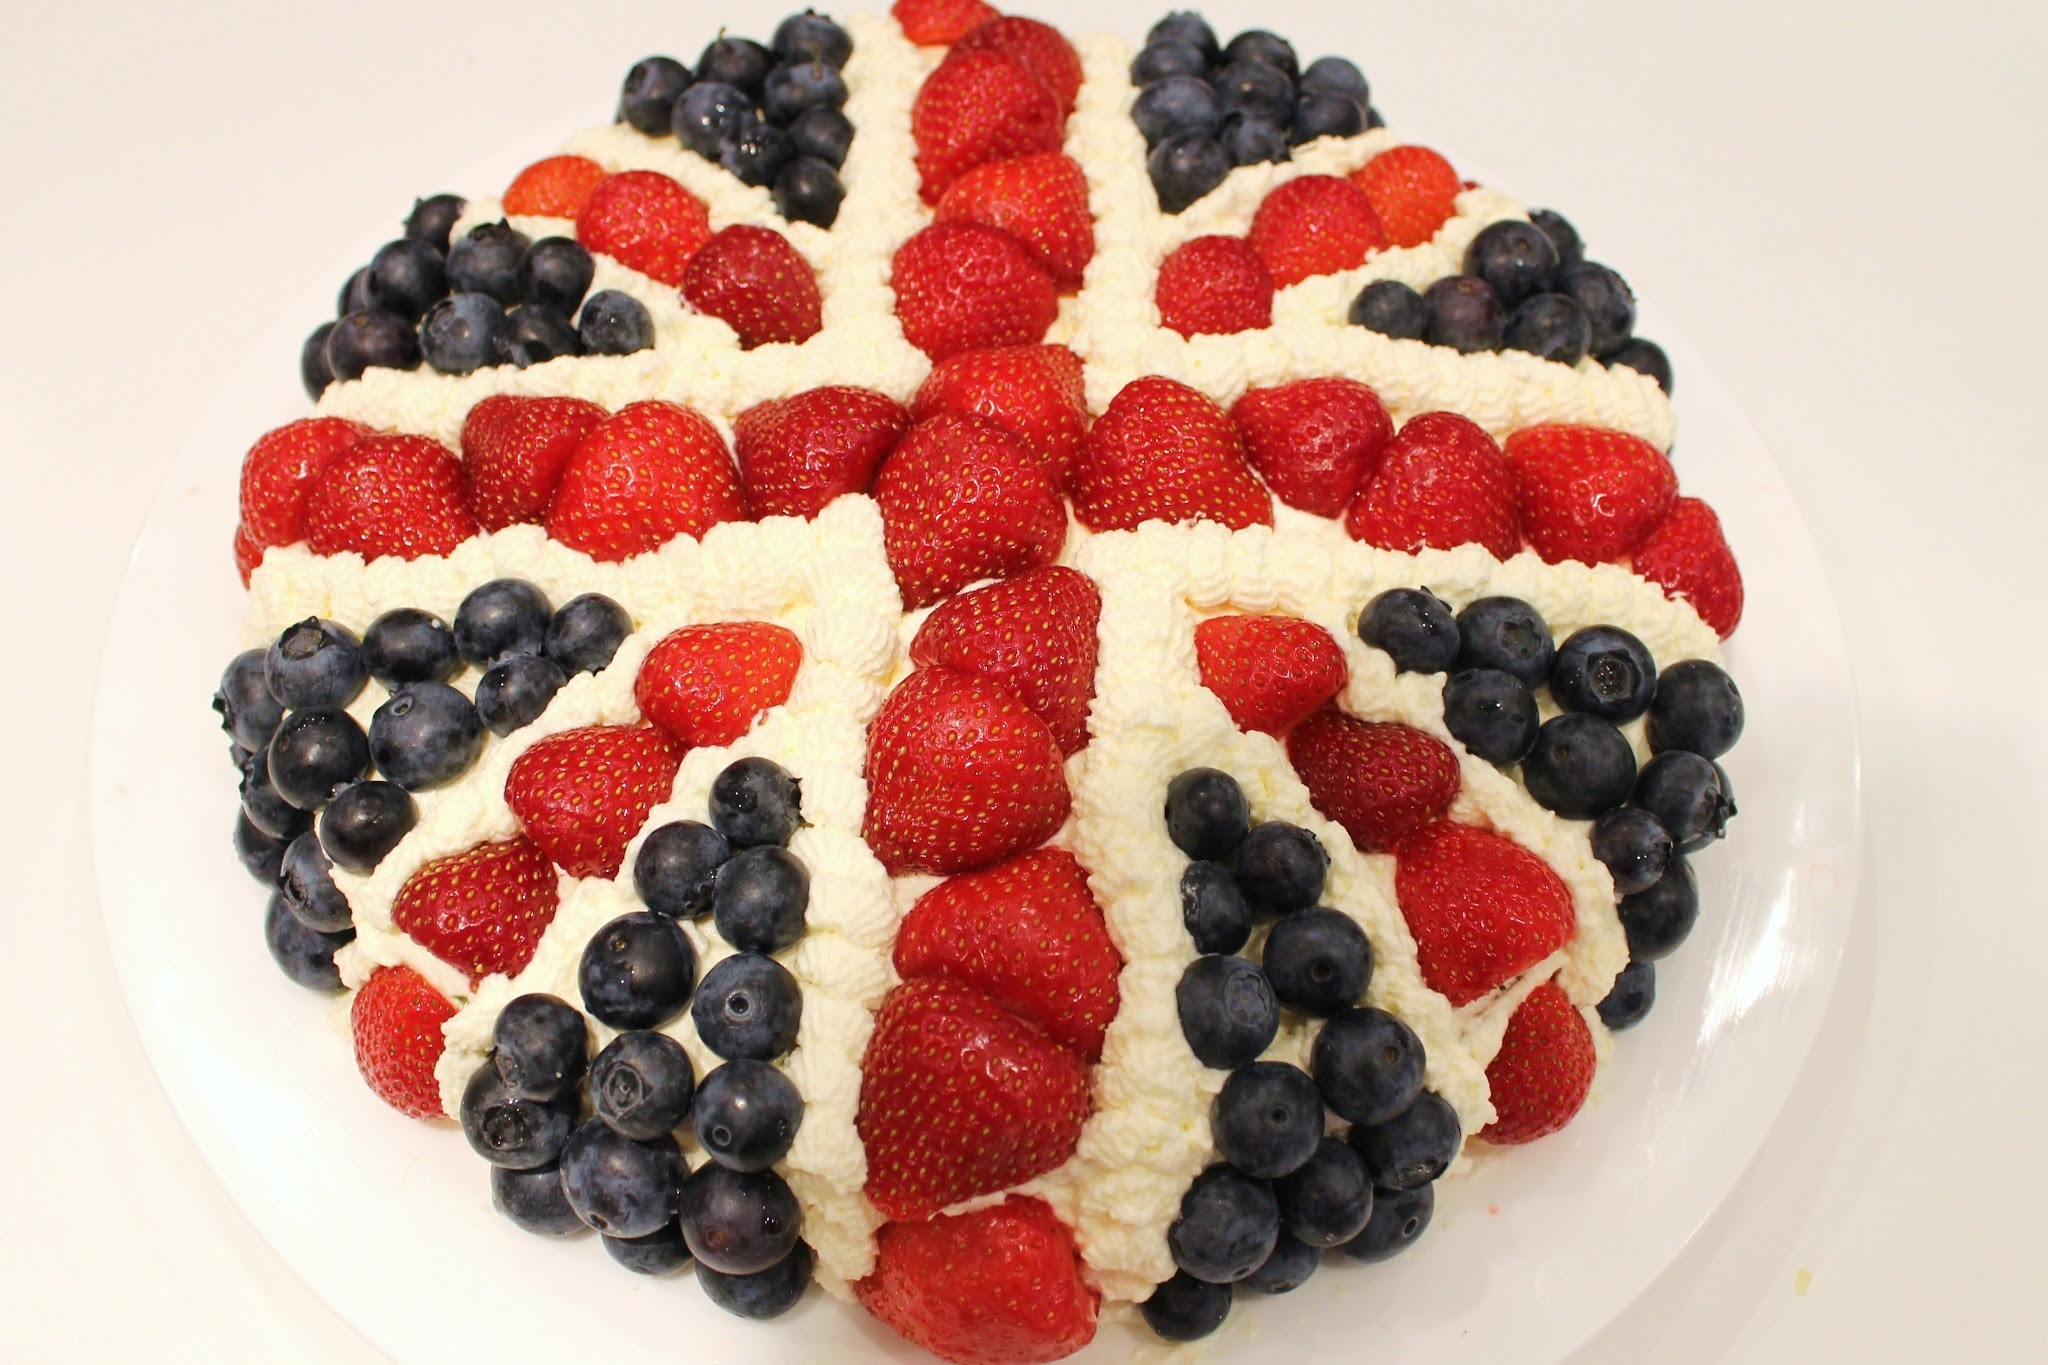 Happy Jubilee!